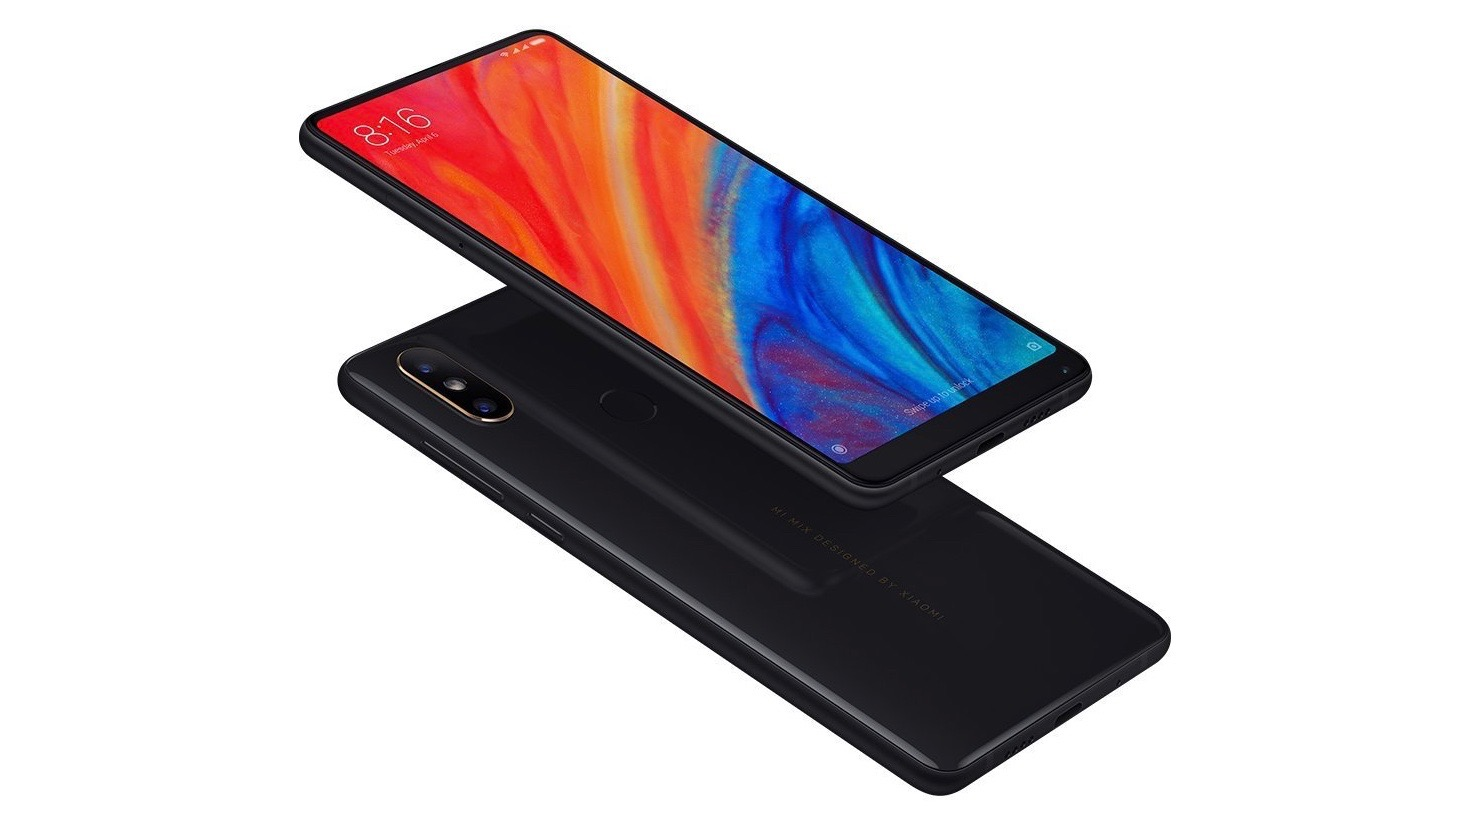 Top 5 best gaming phones for less than £400 (Autumn 2018)